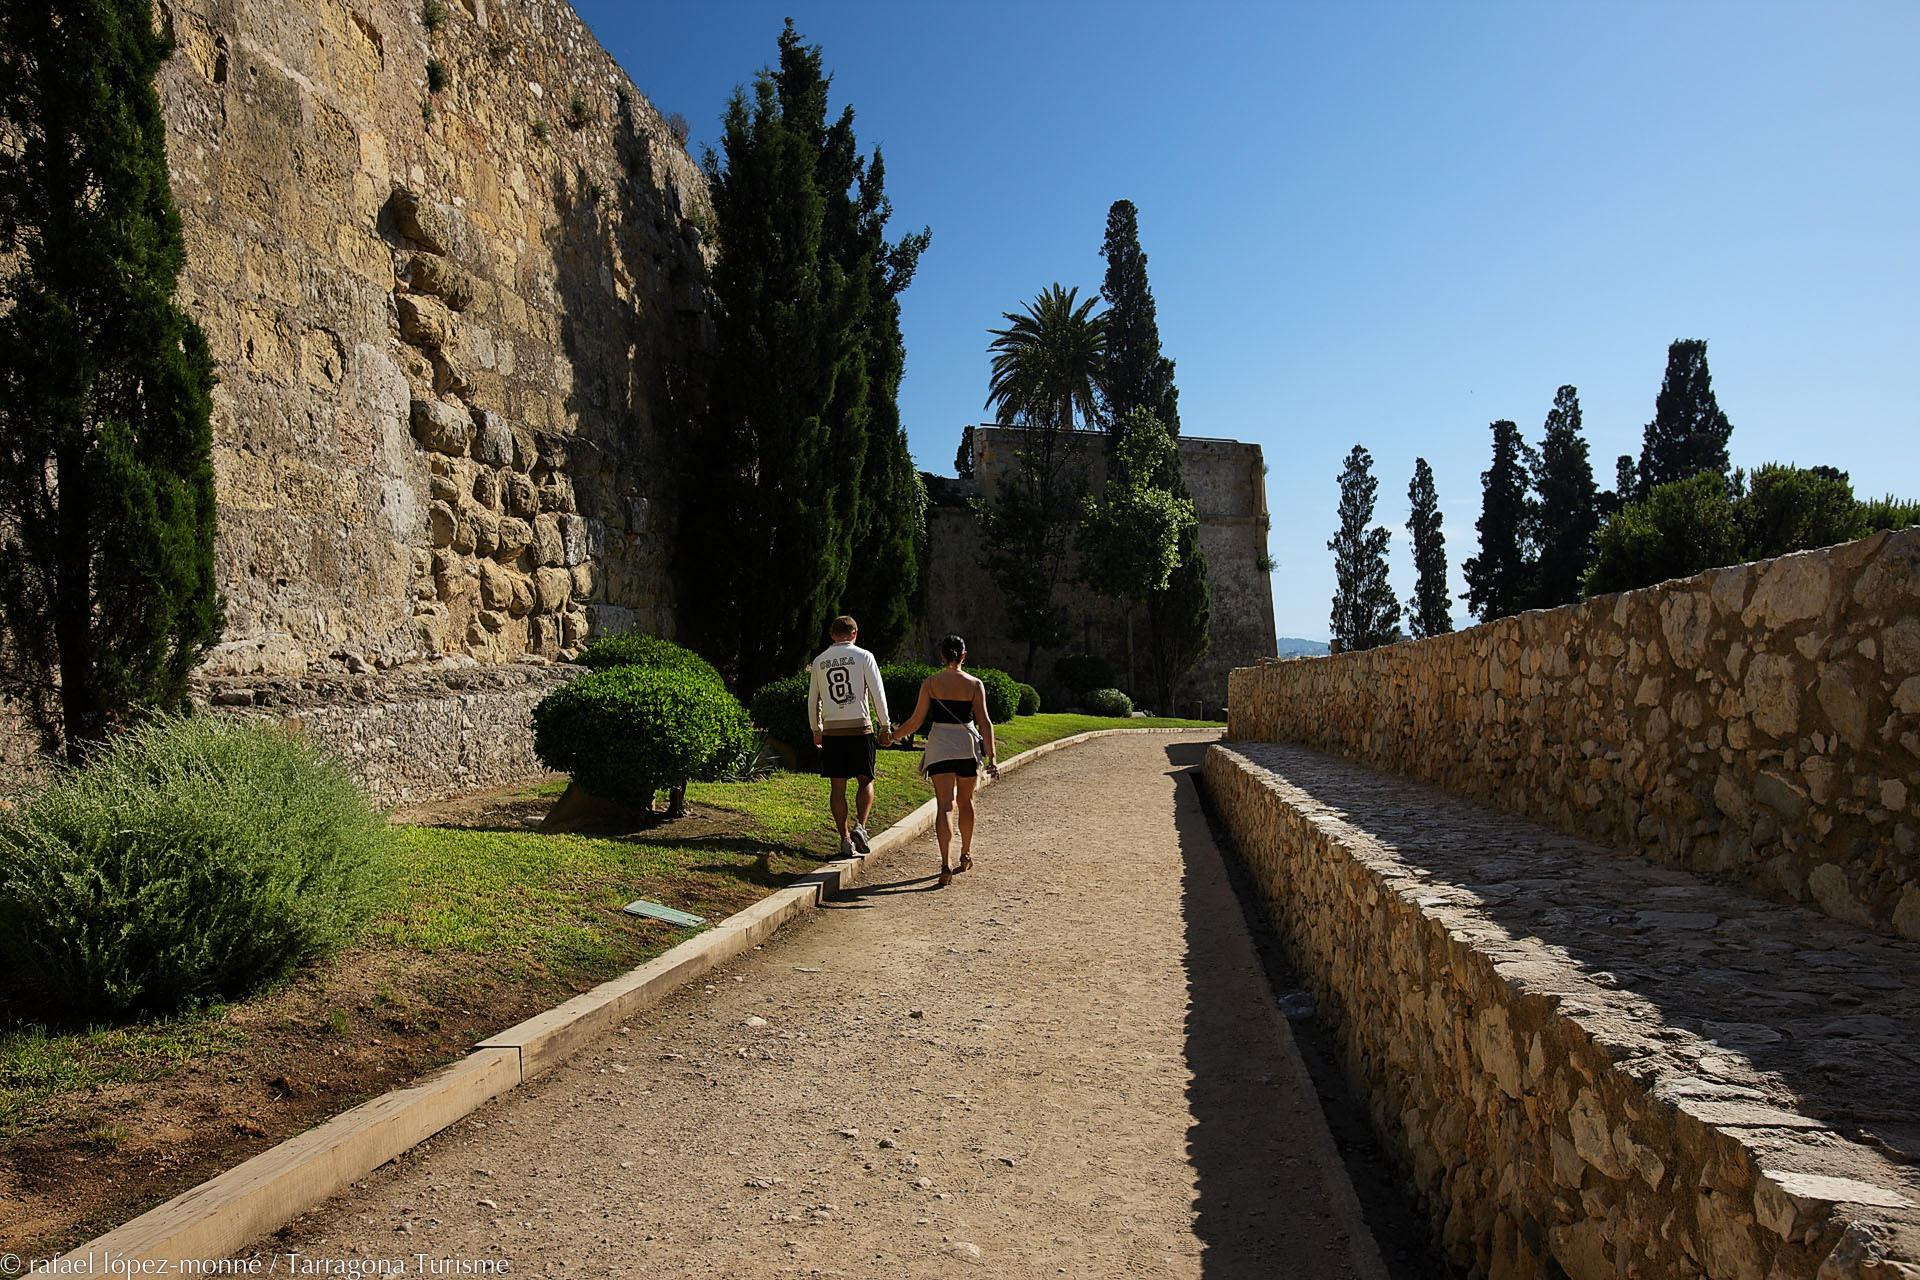 In the 2nd century B.C., a great wall was built around Tarraco, delineating the municipal boundaries. Today, approximately 1,100 of its original 3,500 metres remain, bordering Tarragona's Old Quarter. – © Rafael López-Monné